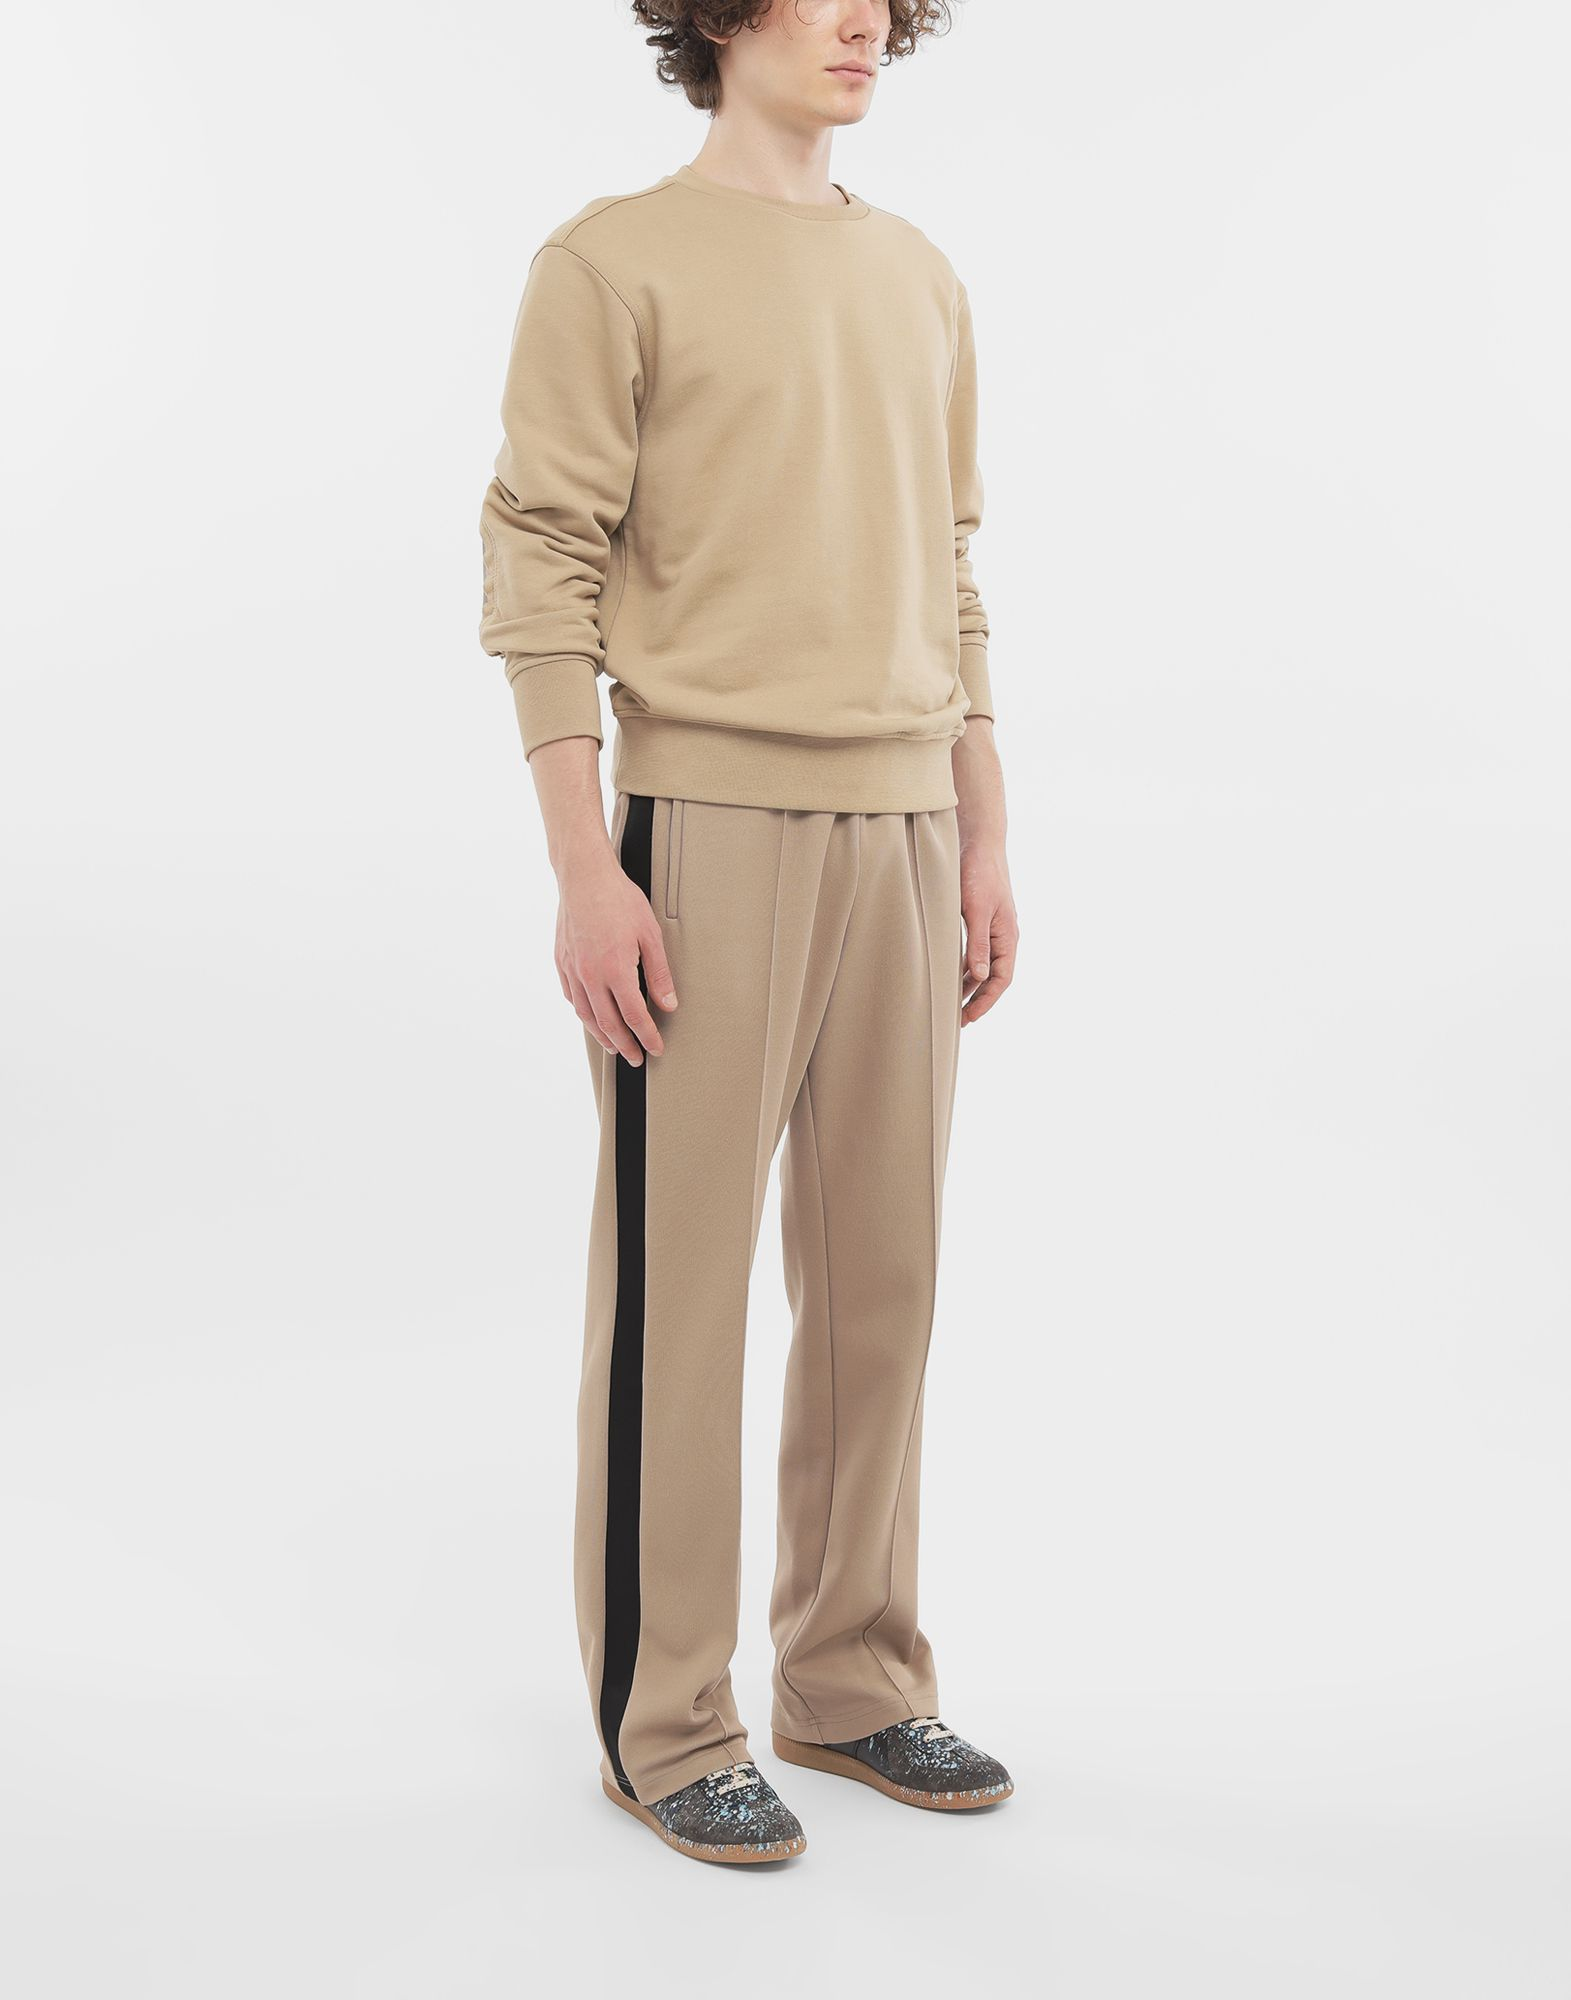 MAISON MARGIELA Polyester blend track pants Casual pants Man d